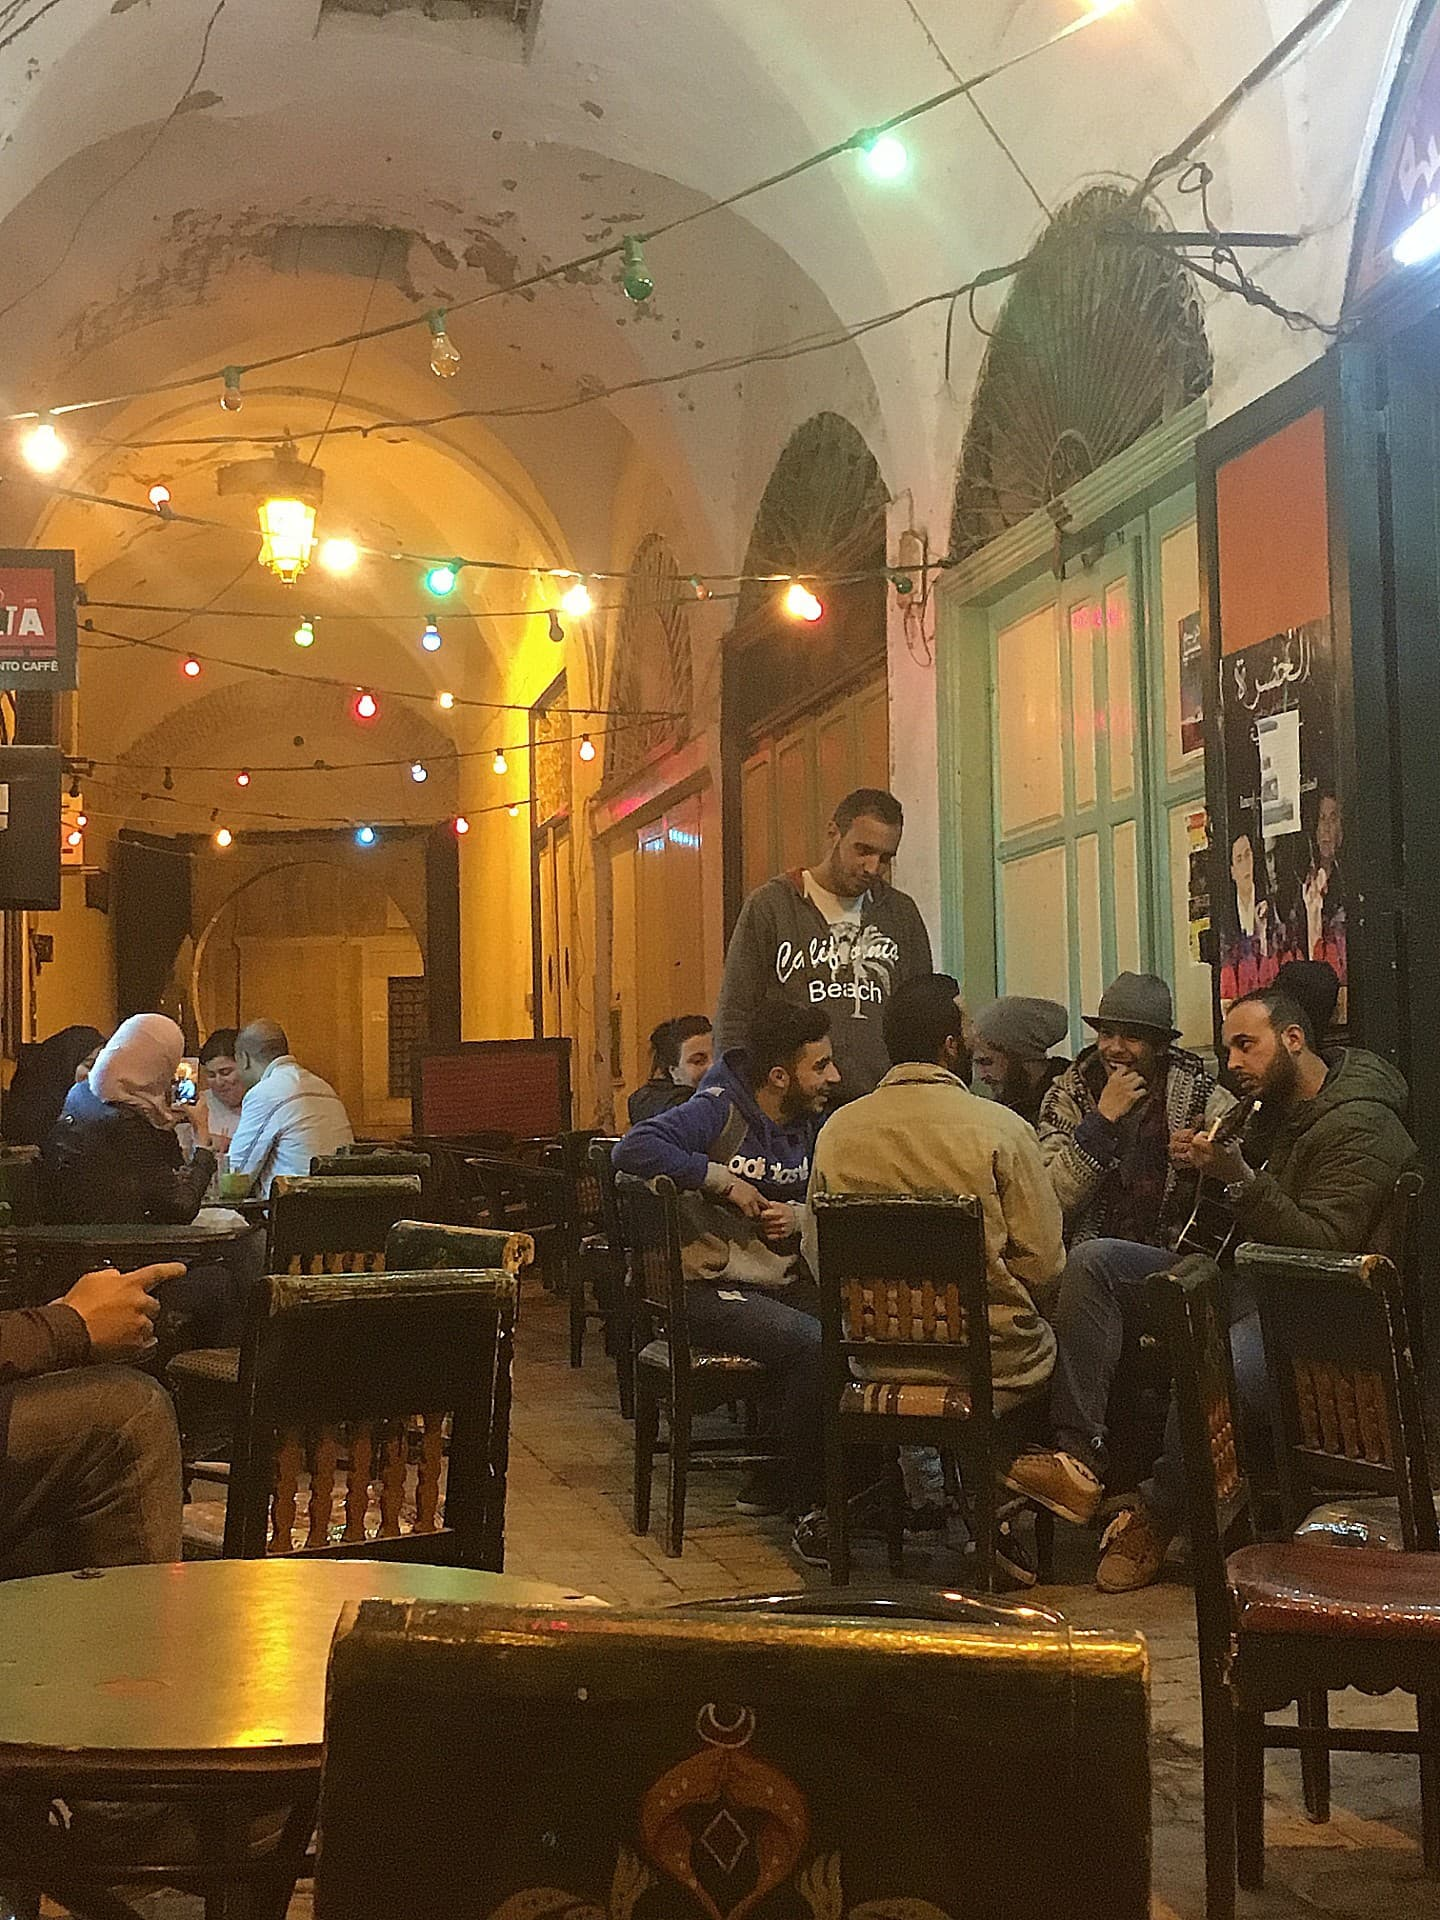 An impromptu musical performance by a group of young men at Café Chaouachine.